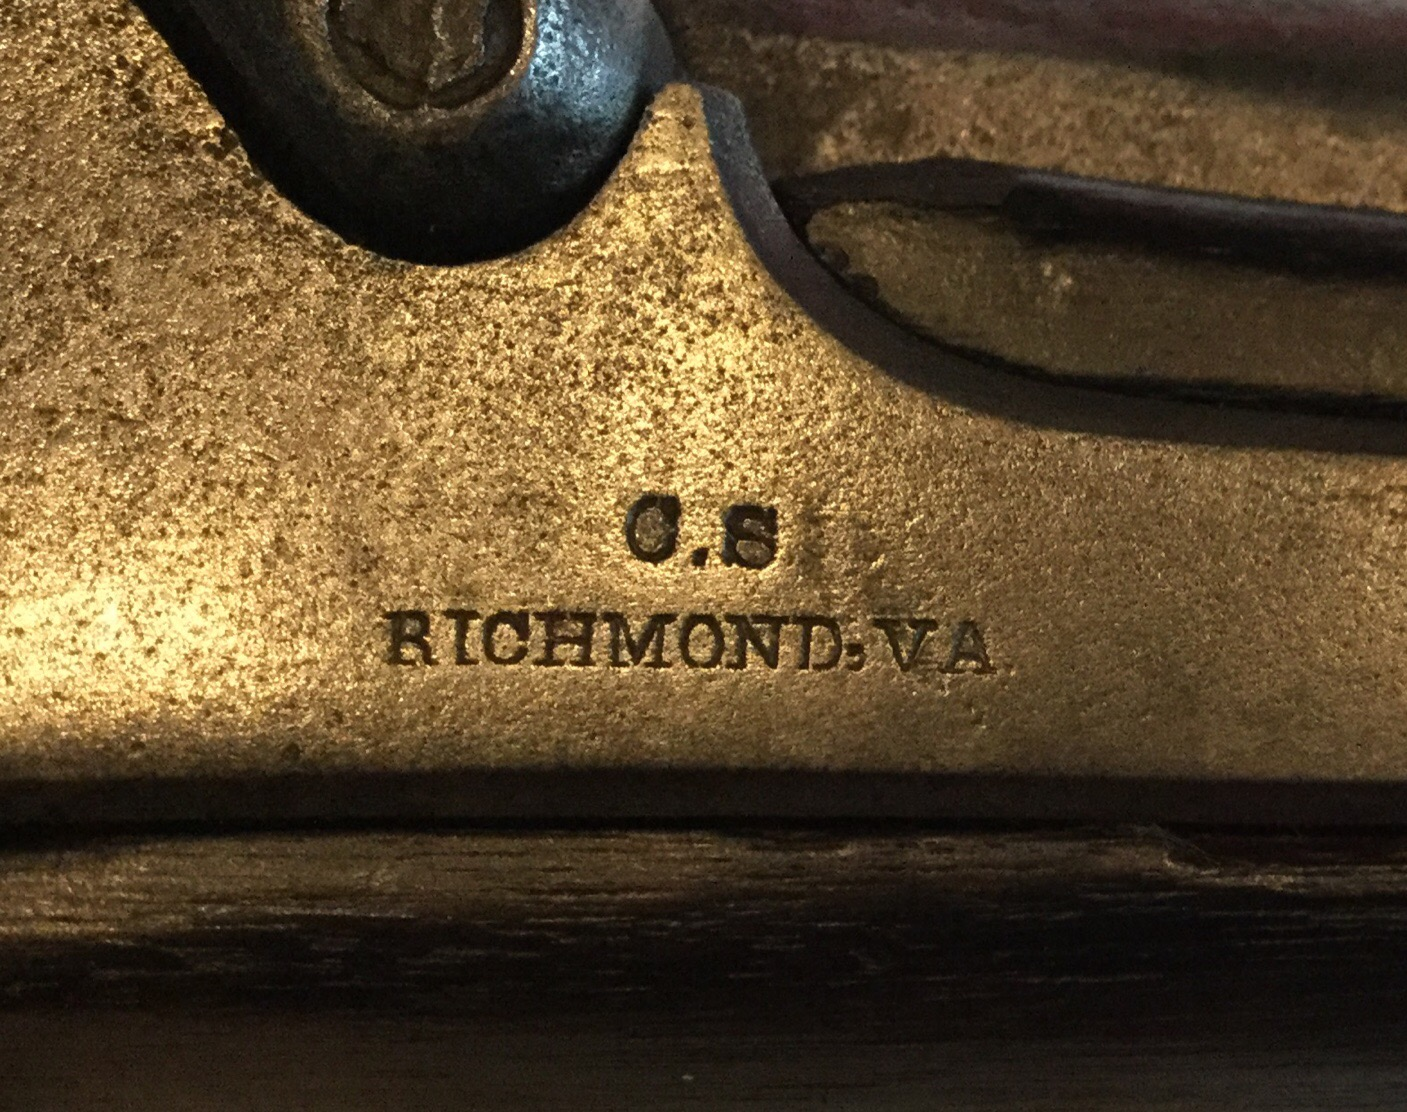 C.S.Richmond, Va